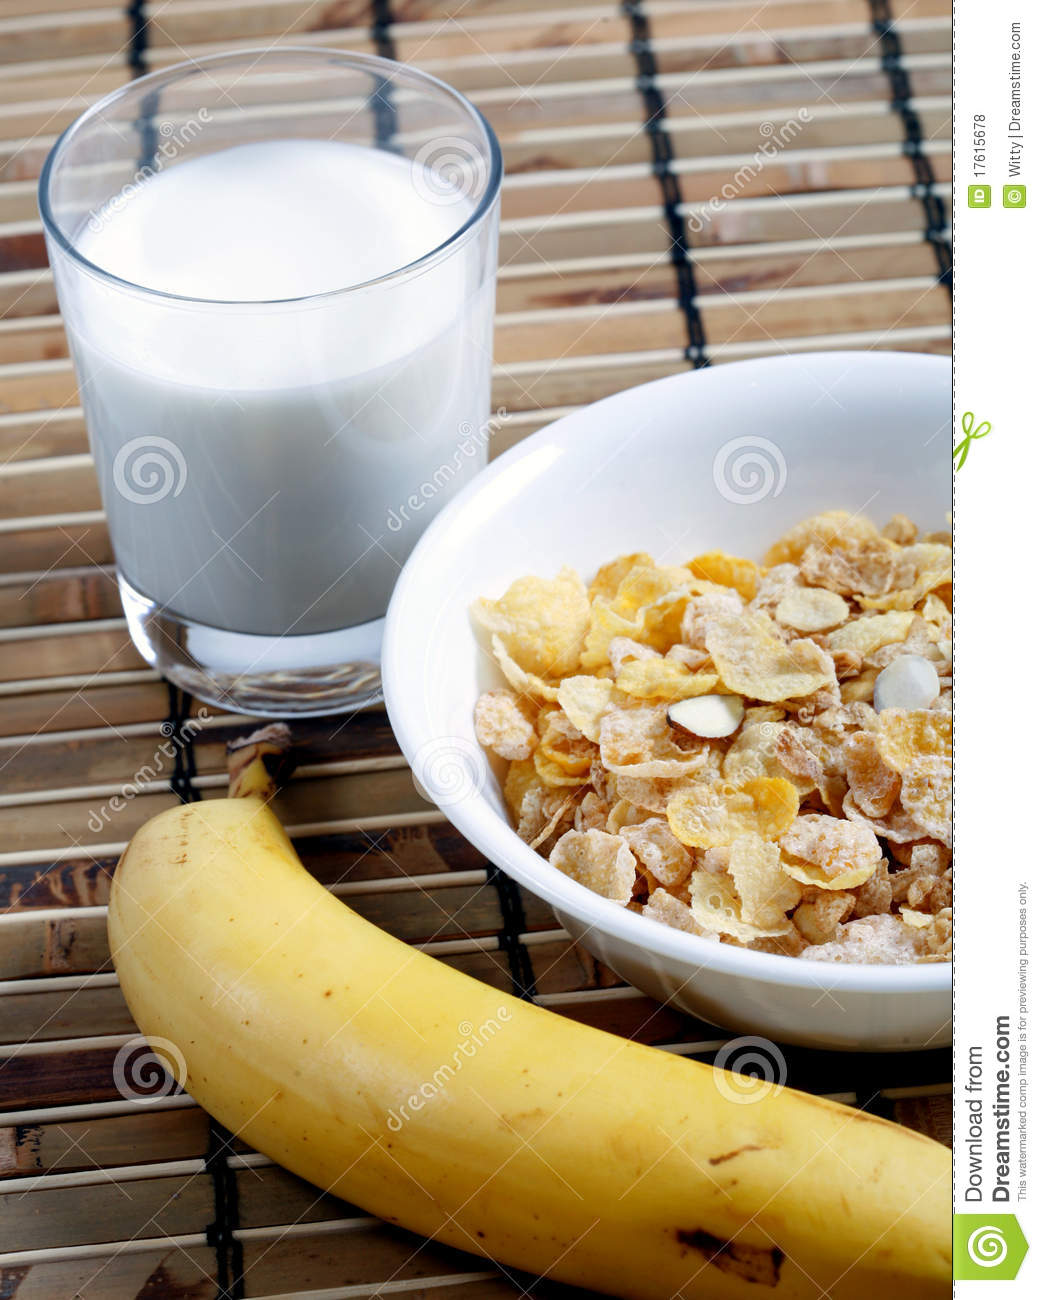 Cereal In Bowl With Milk And Banana Stock Photo